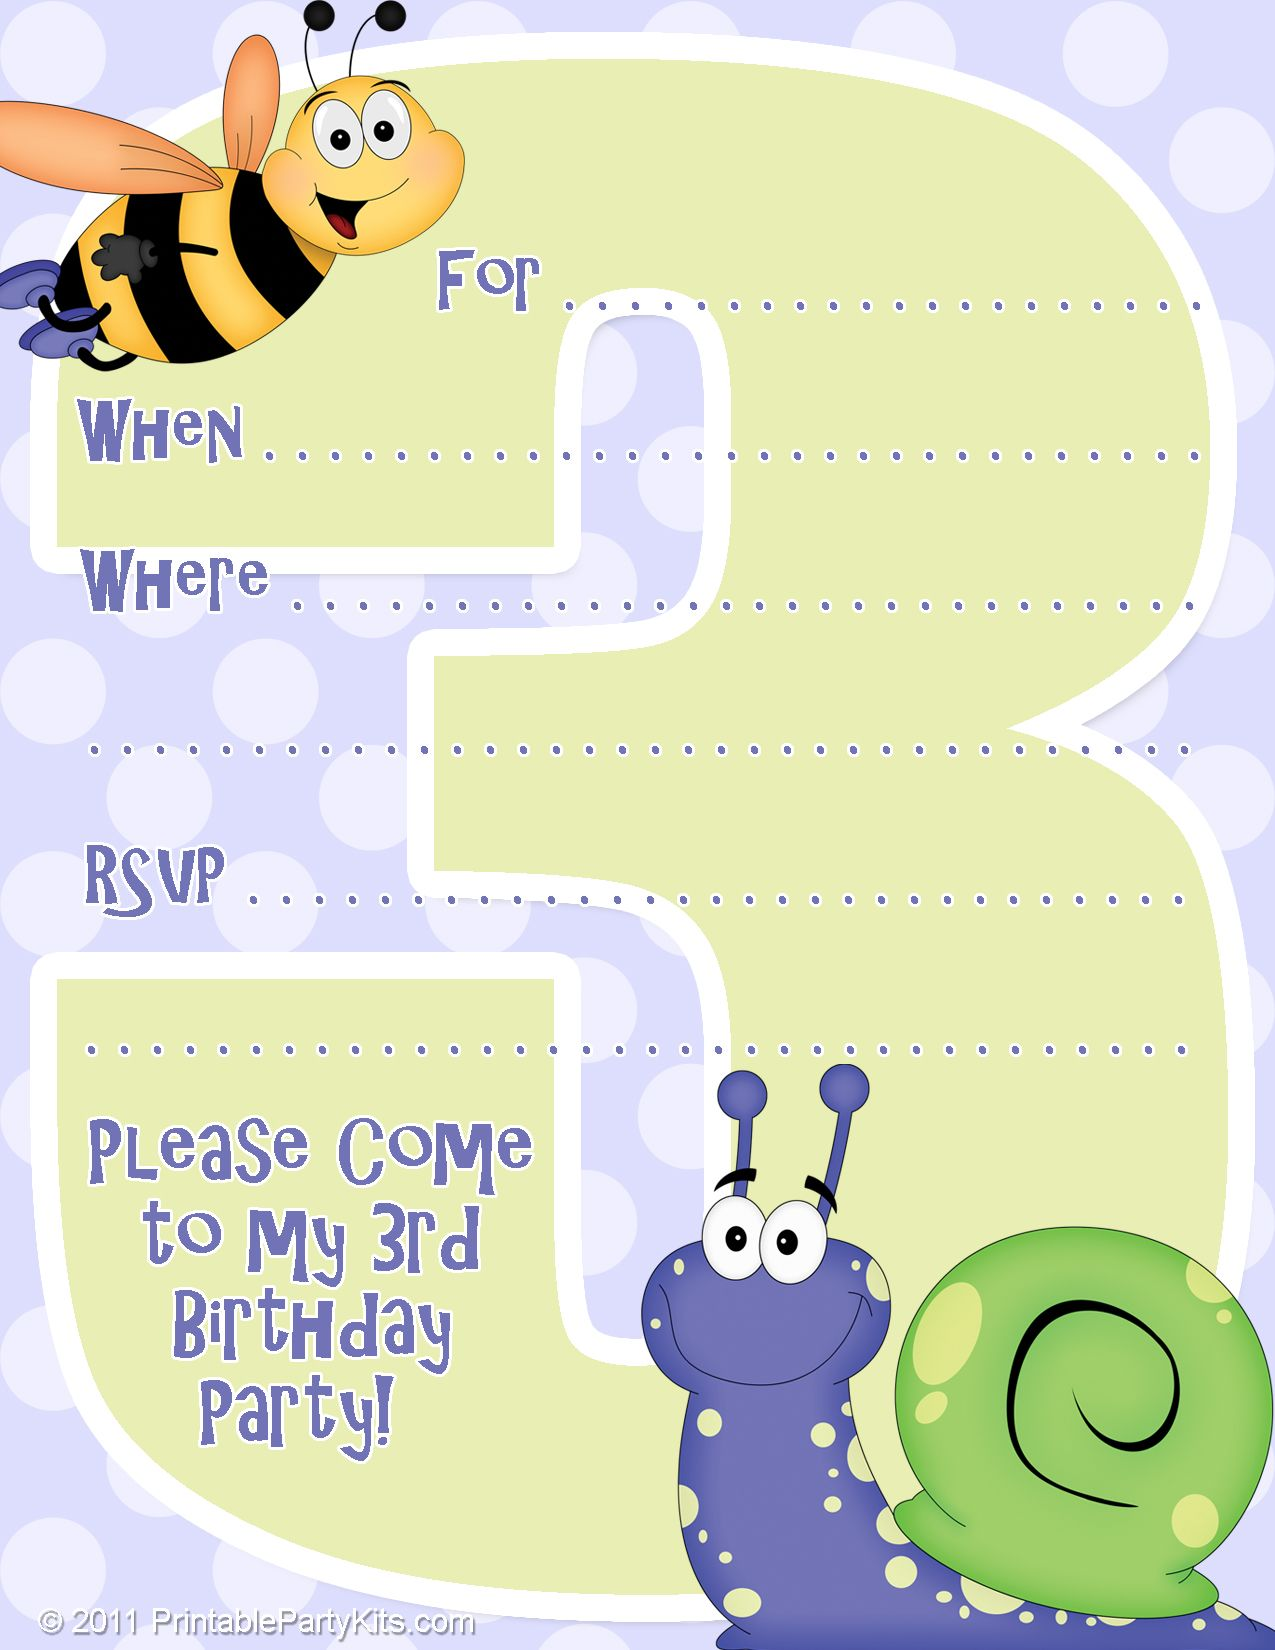 Rd Birthday Party Invitations Free Printable Party Ideas - Party invitation template: 40th birthday party invites free templates